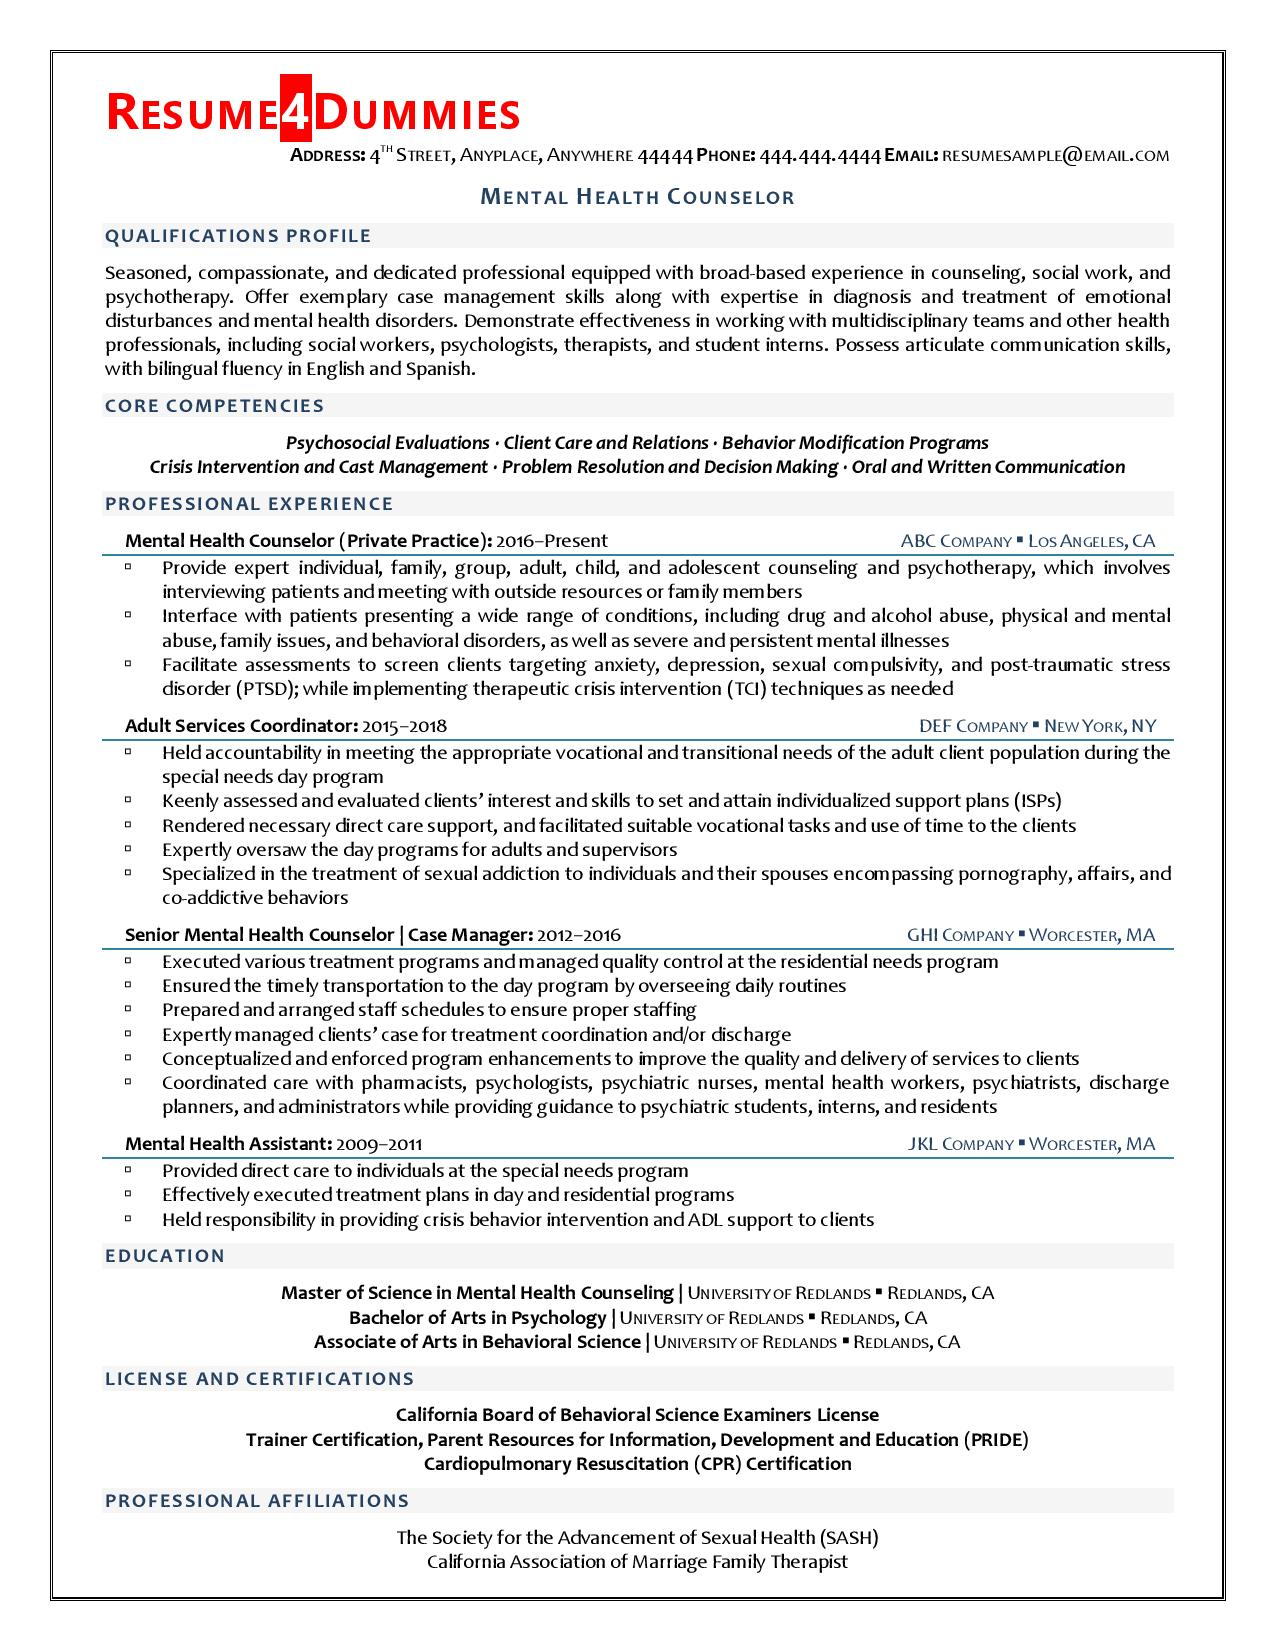 mental health counselor resume example resume4dummies objective for college freshman mba Resume Objective For Mental Health Resume